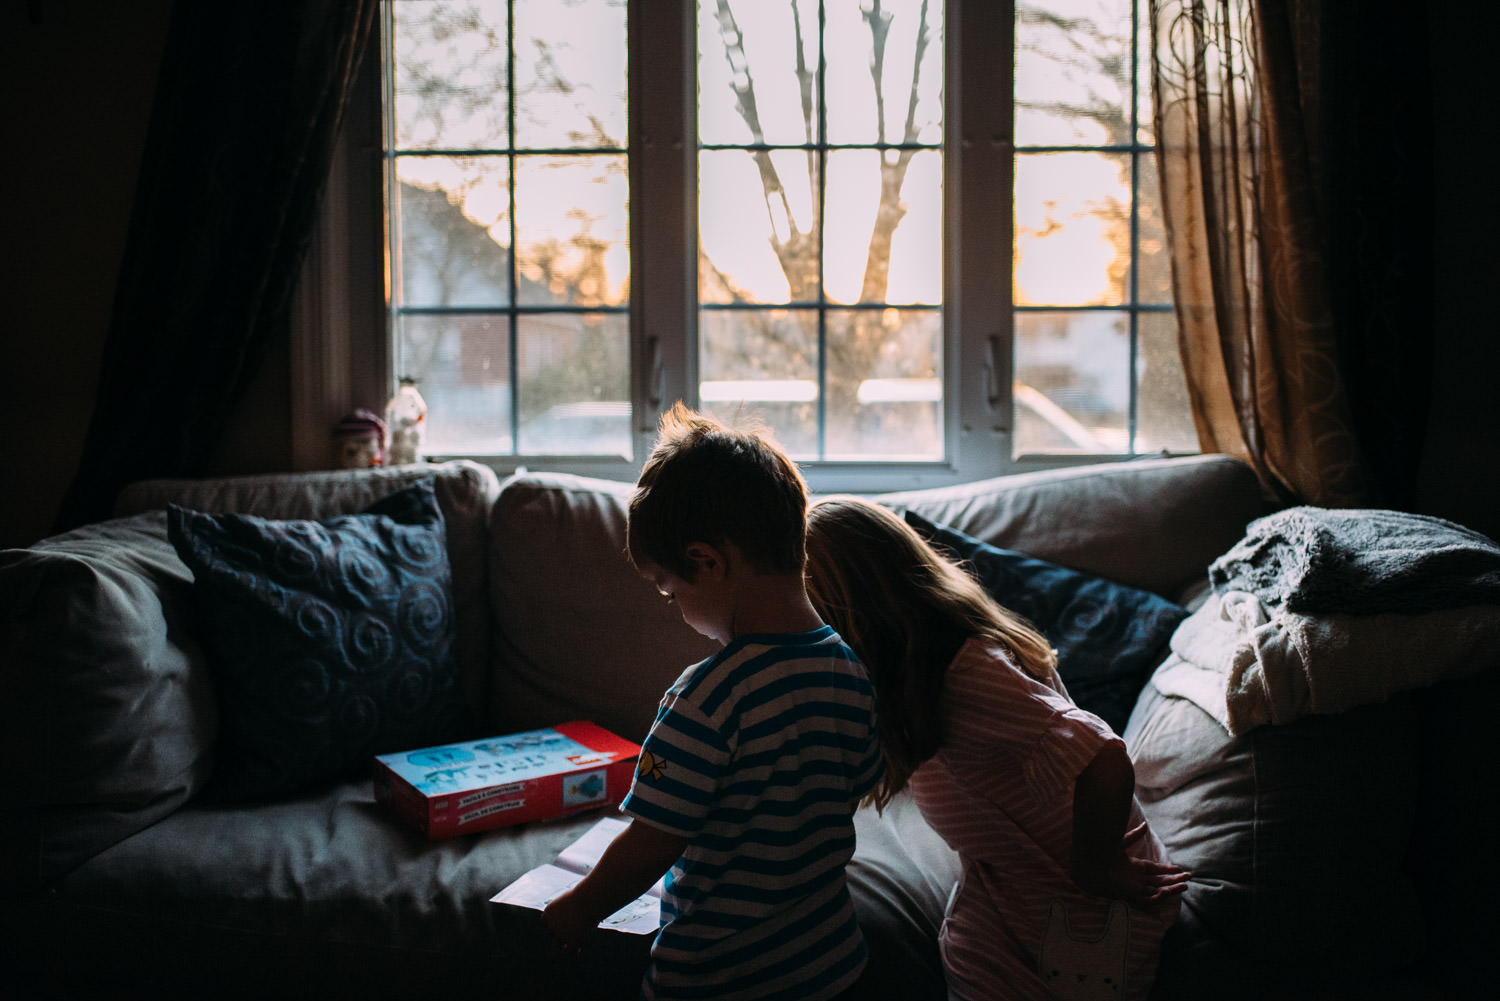 Two kids stand in front of a living room window at sunrise.